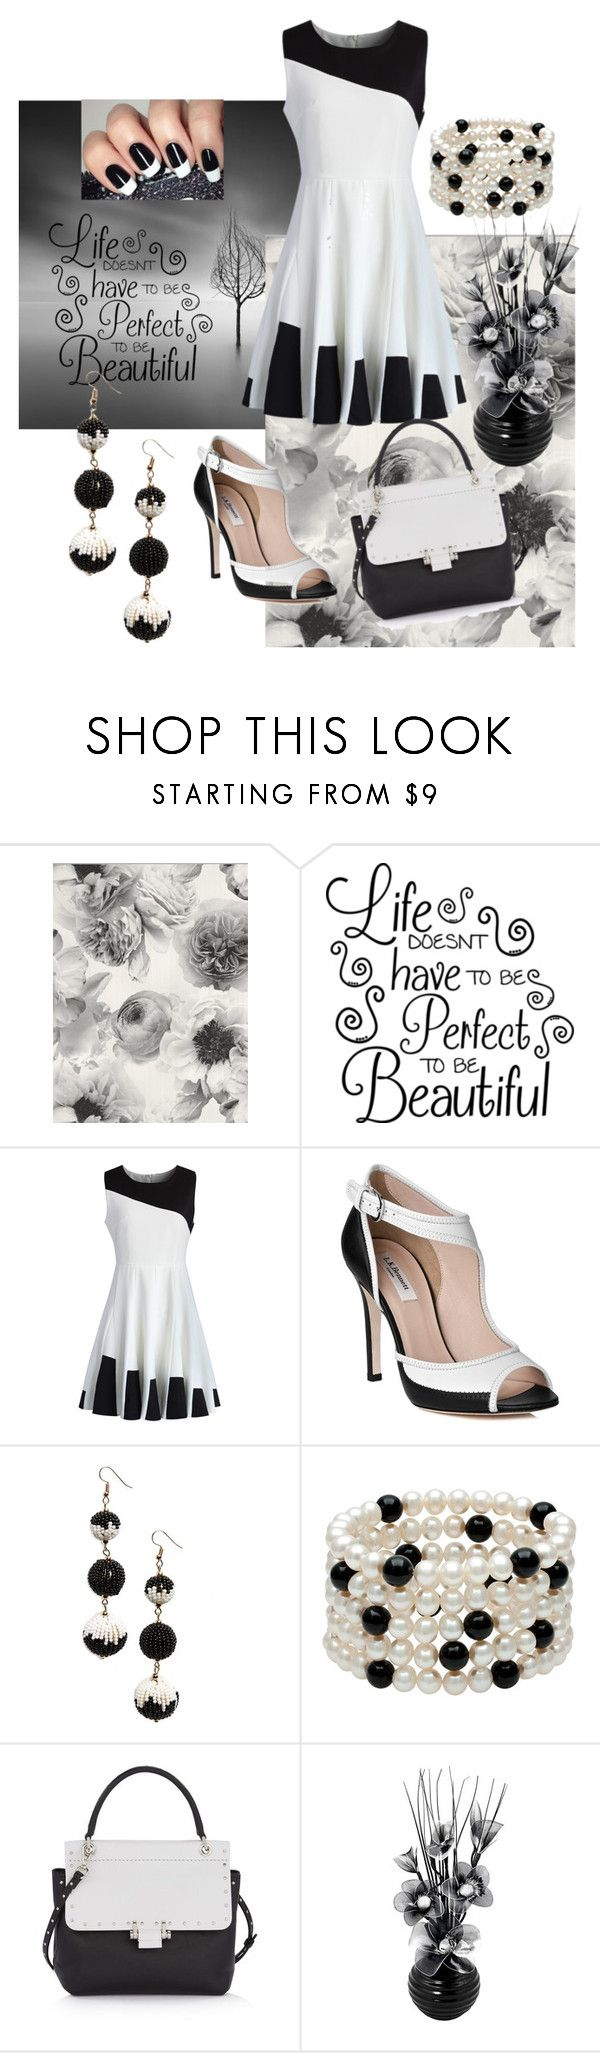 """""""BLACK & WHITE SKATER DRESS STYLIN'!"""" by lensesrmything ❤ liked on Polyvore featuring Chicwish, L.K.Bennett, BP. and Lanvin"""